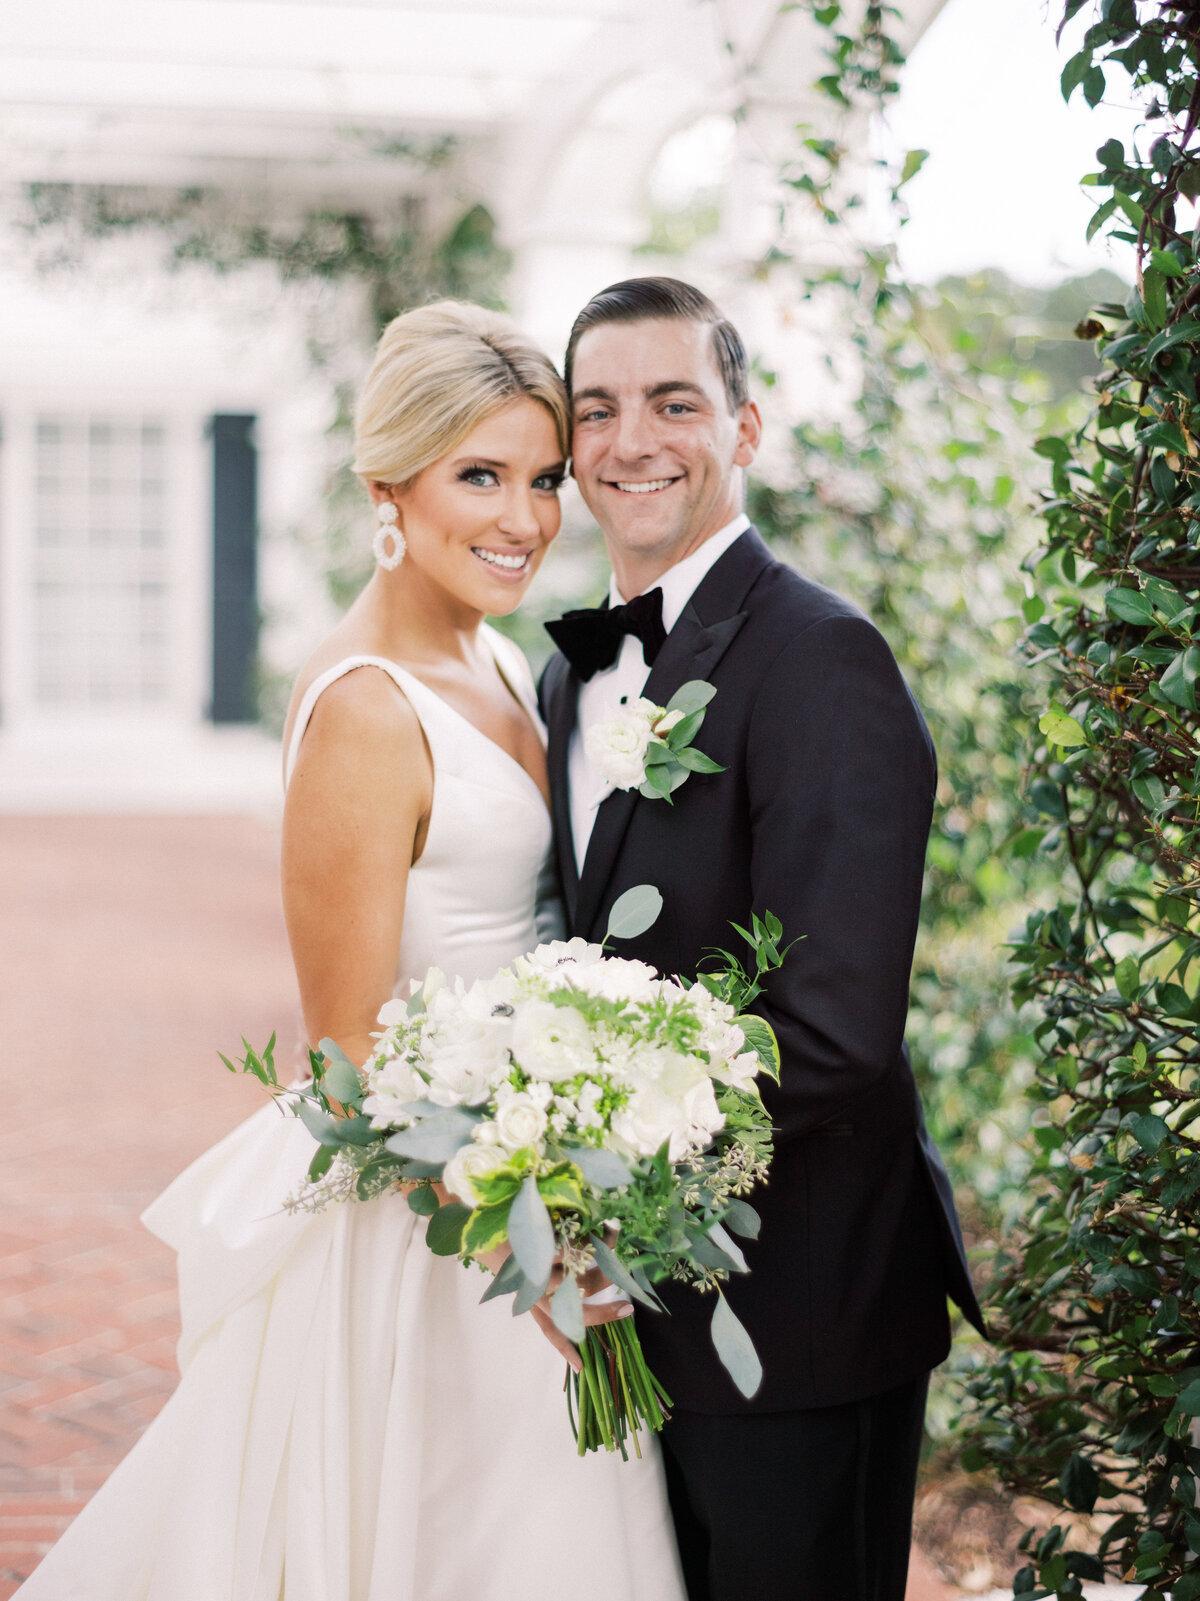 Belfair-Plantation-Bluffton-Hilton-Head-Island-Wedding-Philip-Casey-Photo-15